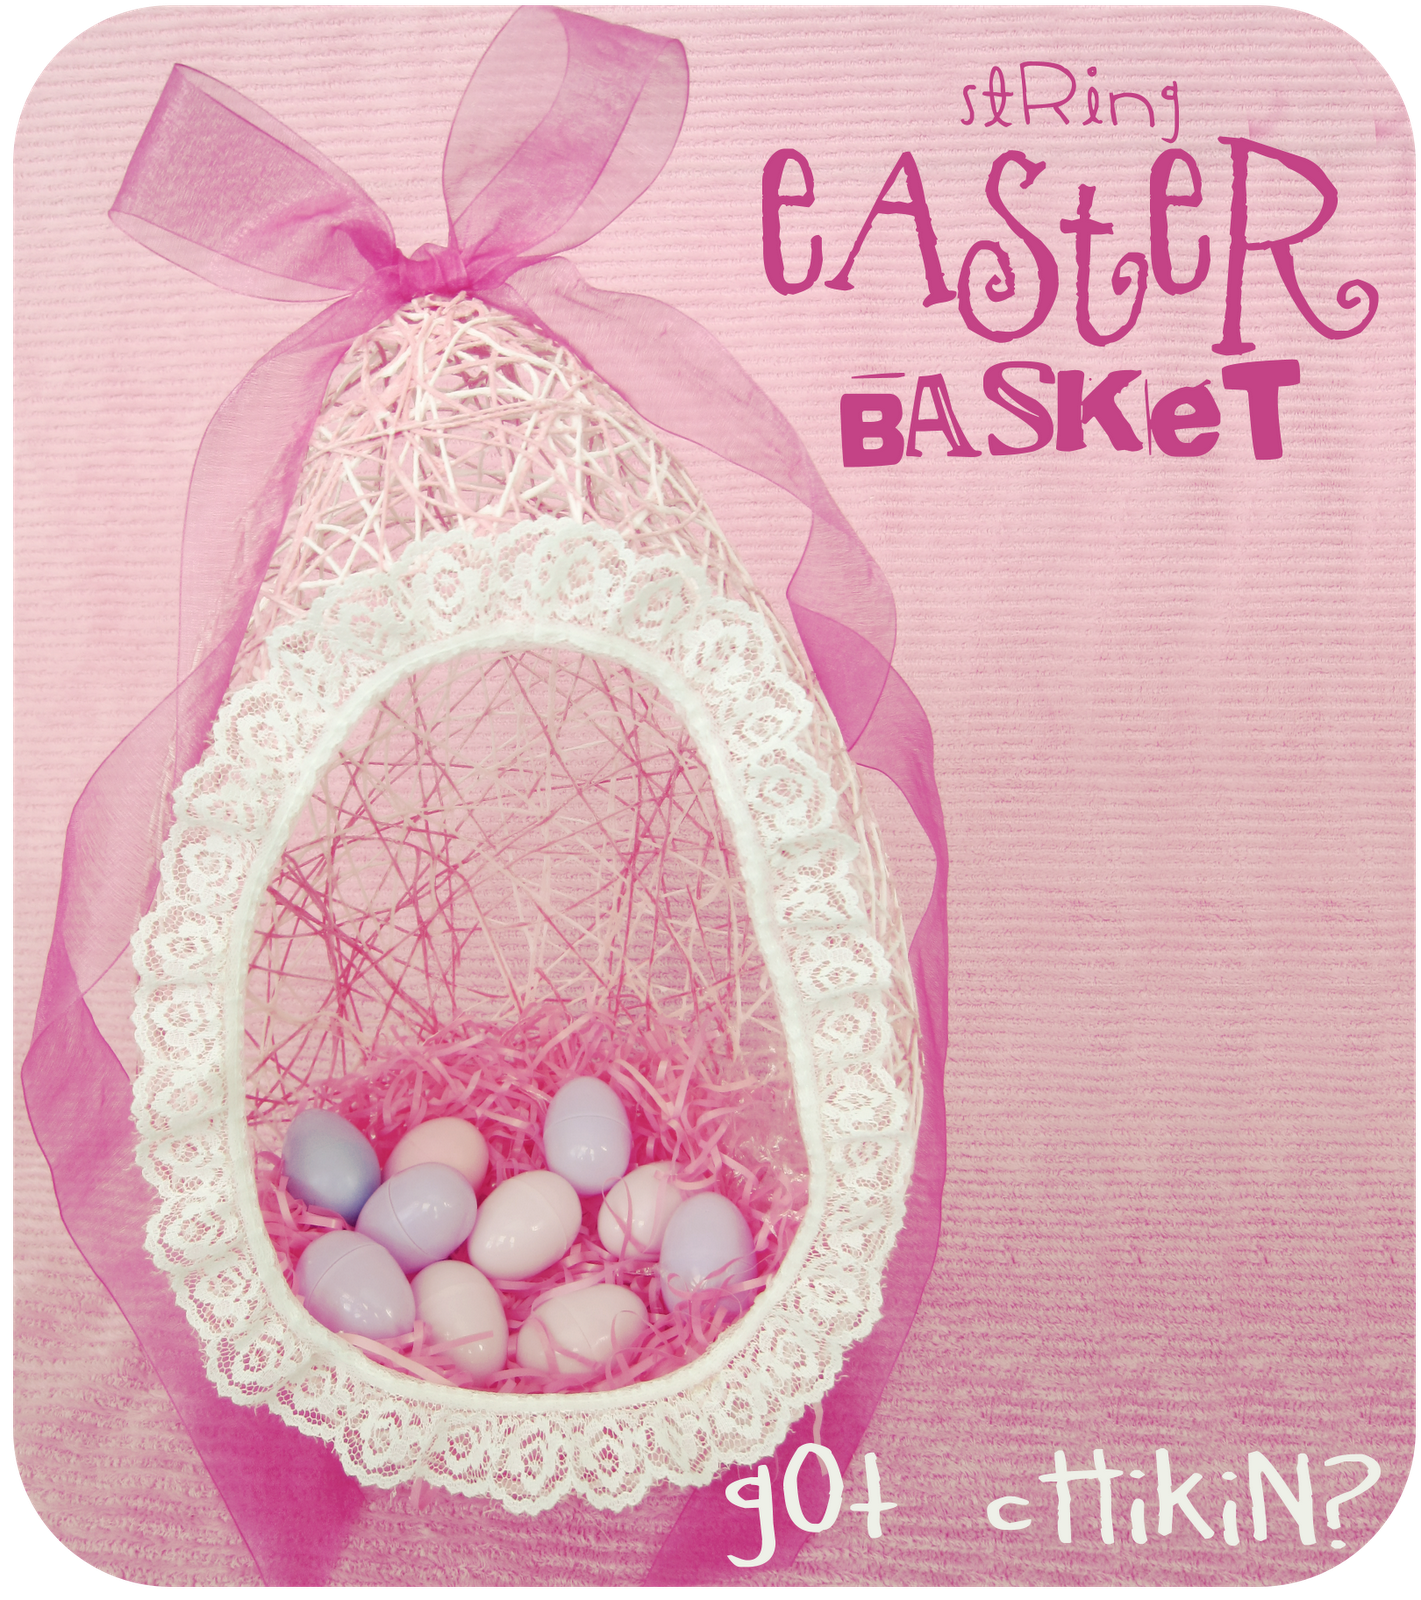 Diy stringyarn easter baskets been wanting to make these for kid easter baskets unique homemade and creative ideas 2015 2016 negle Image collections